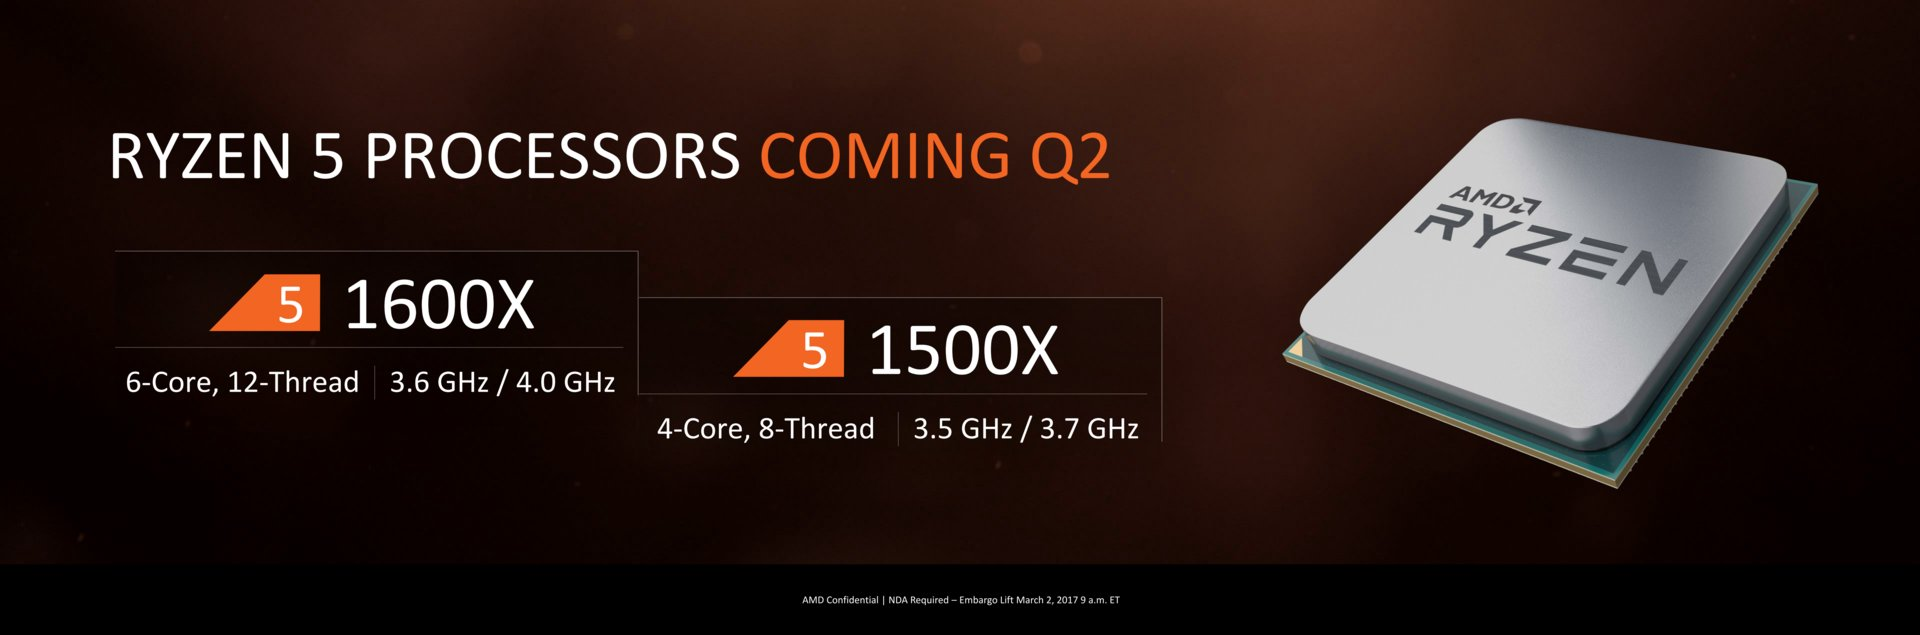 AMD release the specification of their Ryzen 5 1500X